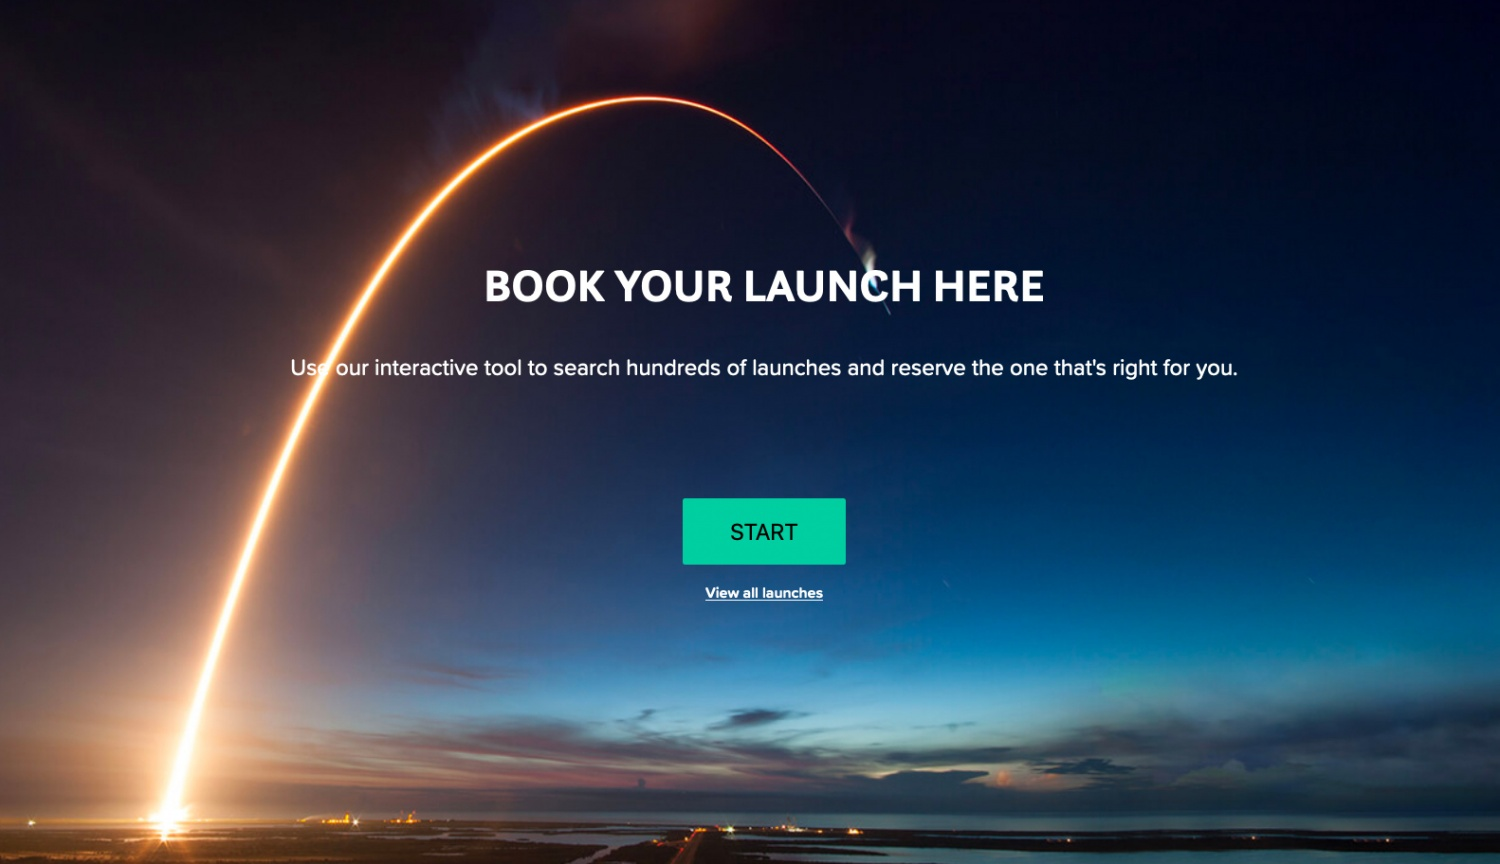 Sending Something to Space? Book Your Launch Now...